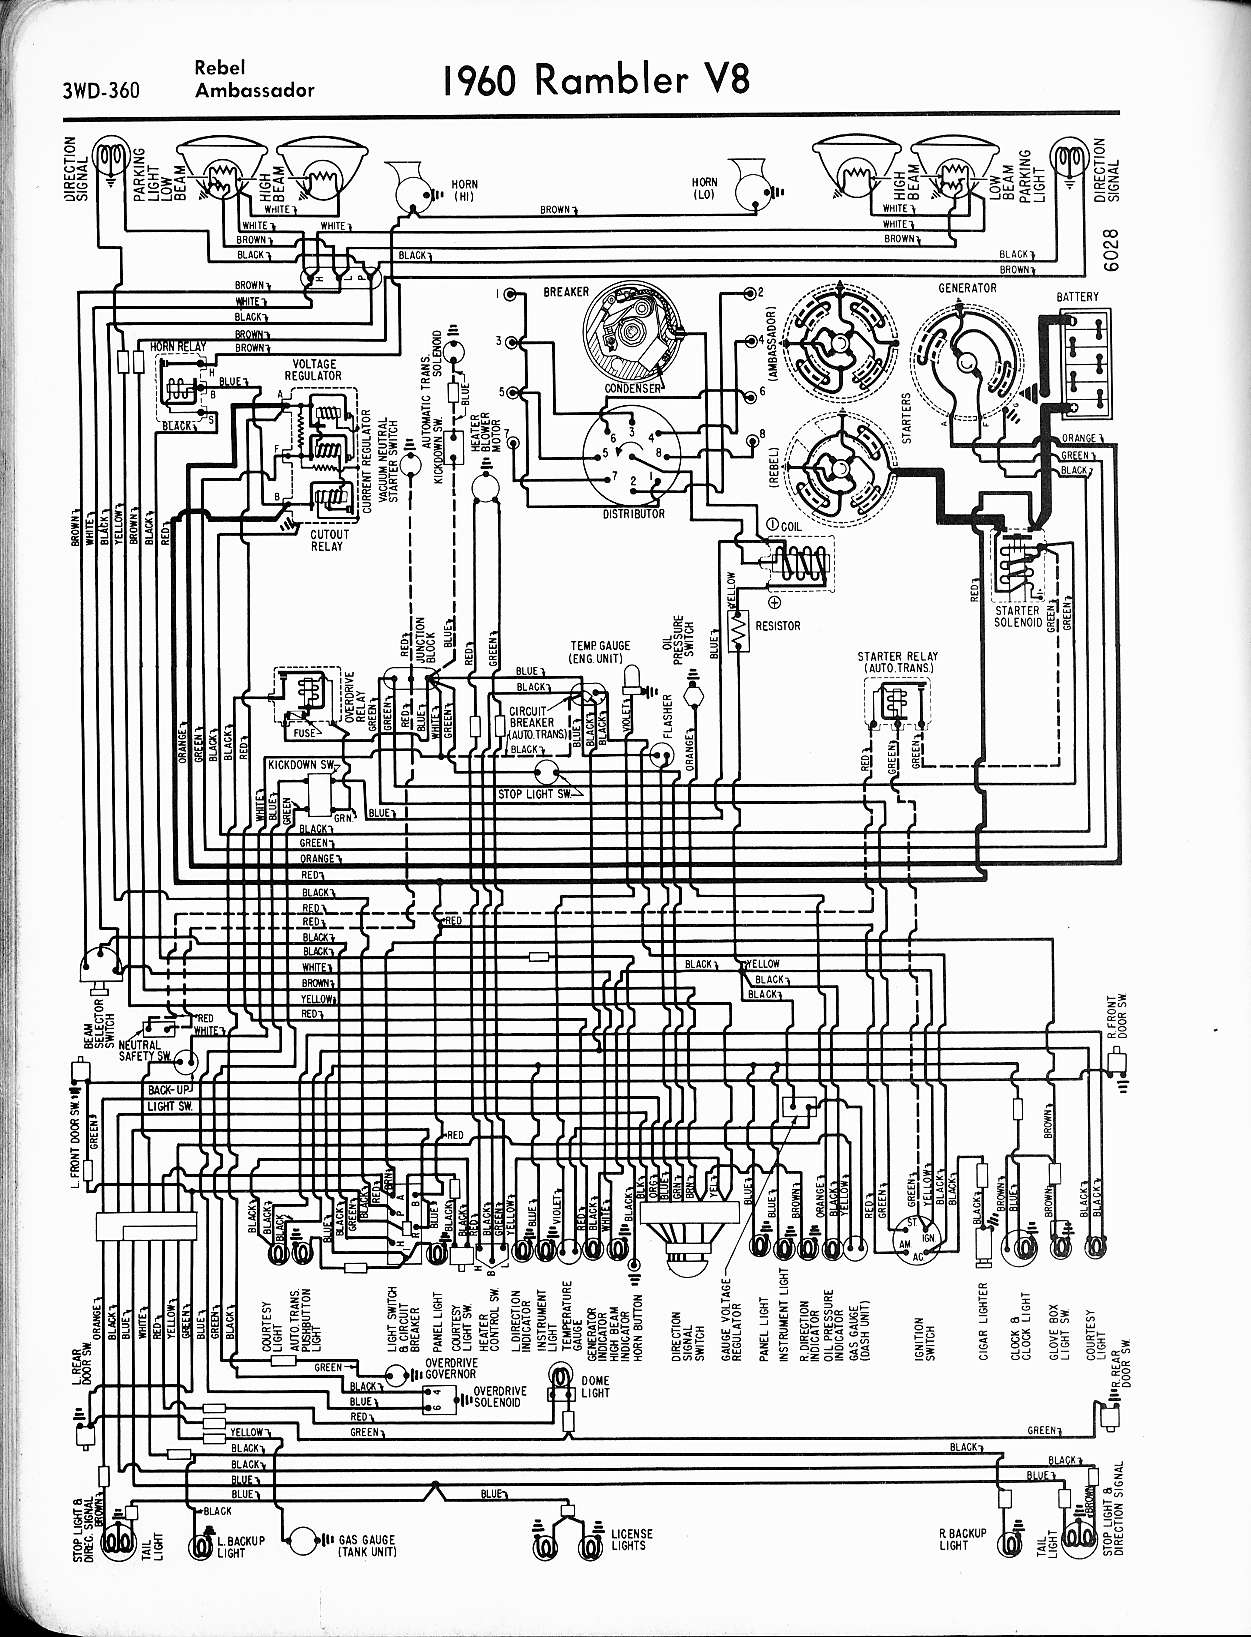 1960 Rambler Fuse Box 21 Wiring Diagram Images Diagrams Nash Travel Trailer Mwire5765 360 The Old Car Manual Project 1961 At